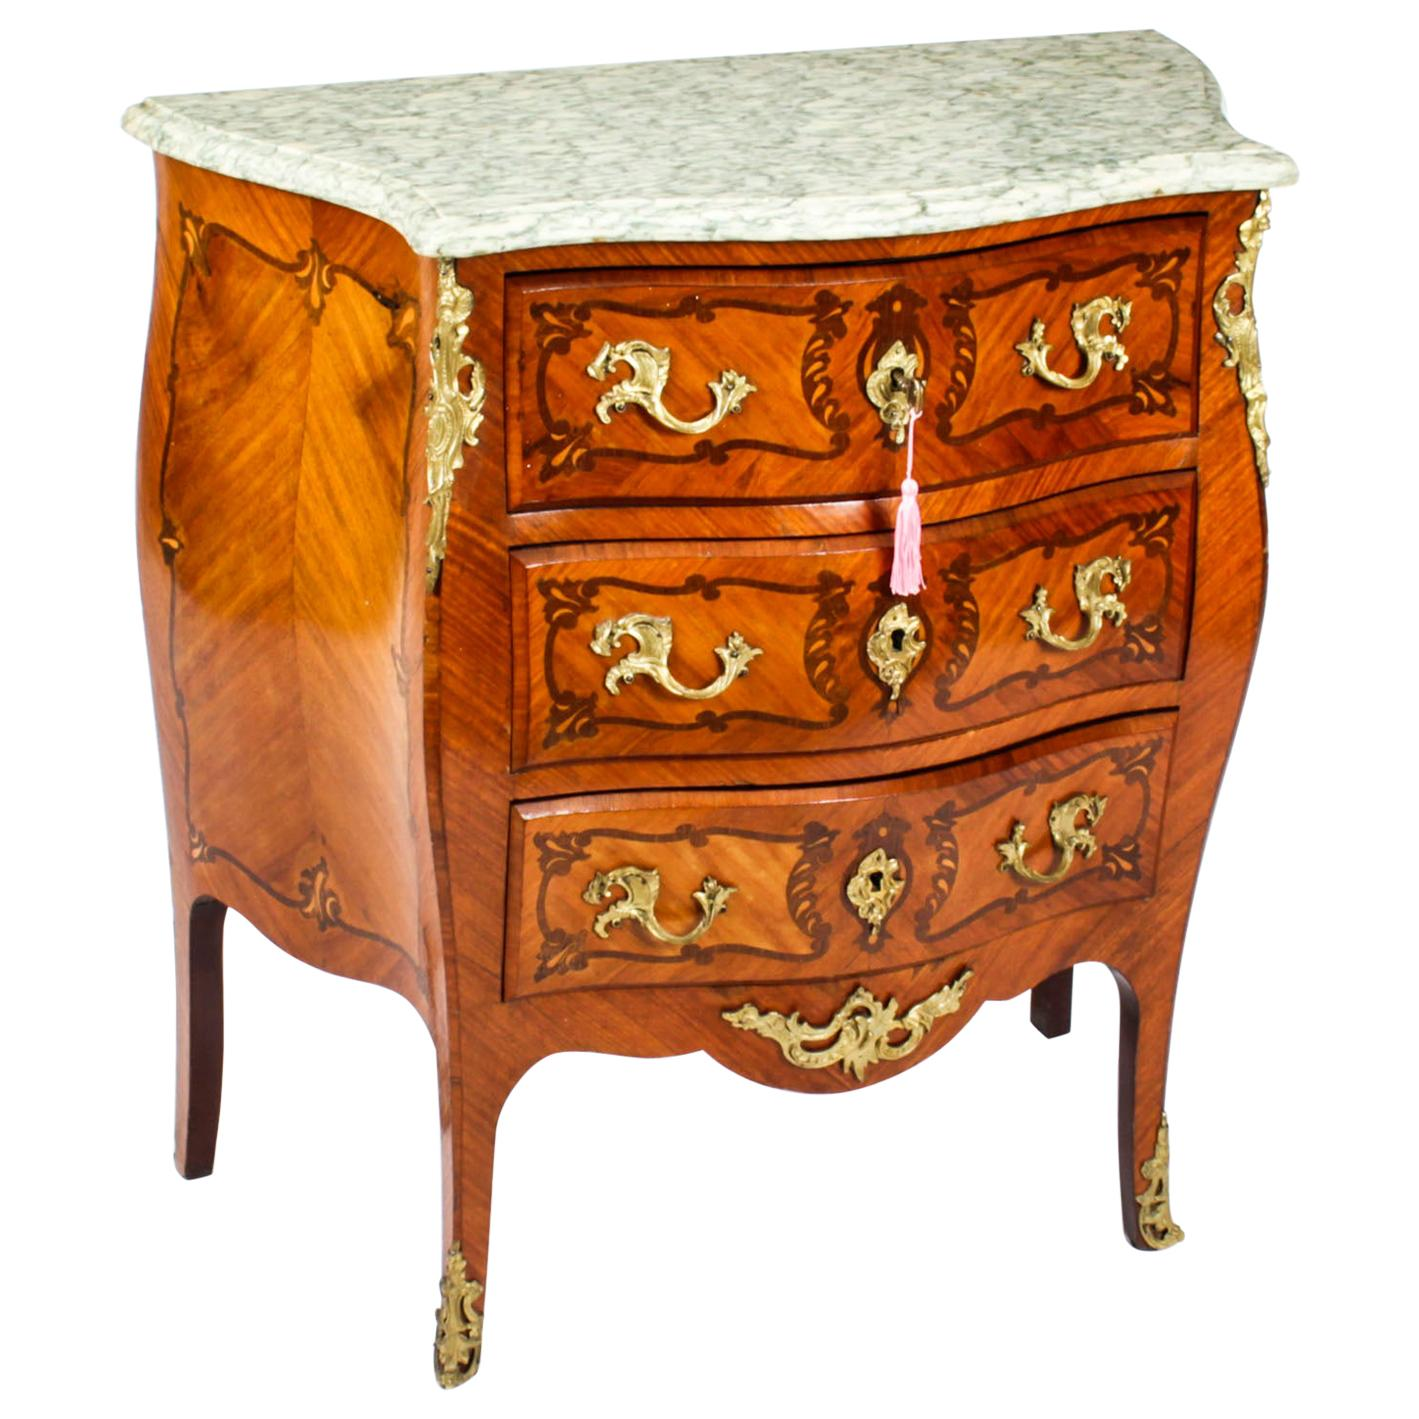 Antique French Louis Revival Marquetry Commode, 19th Century